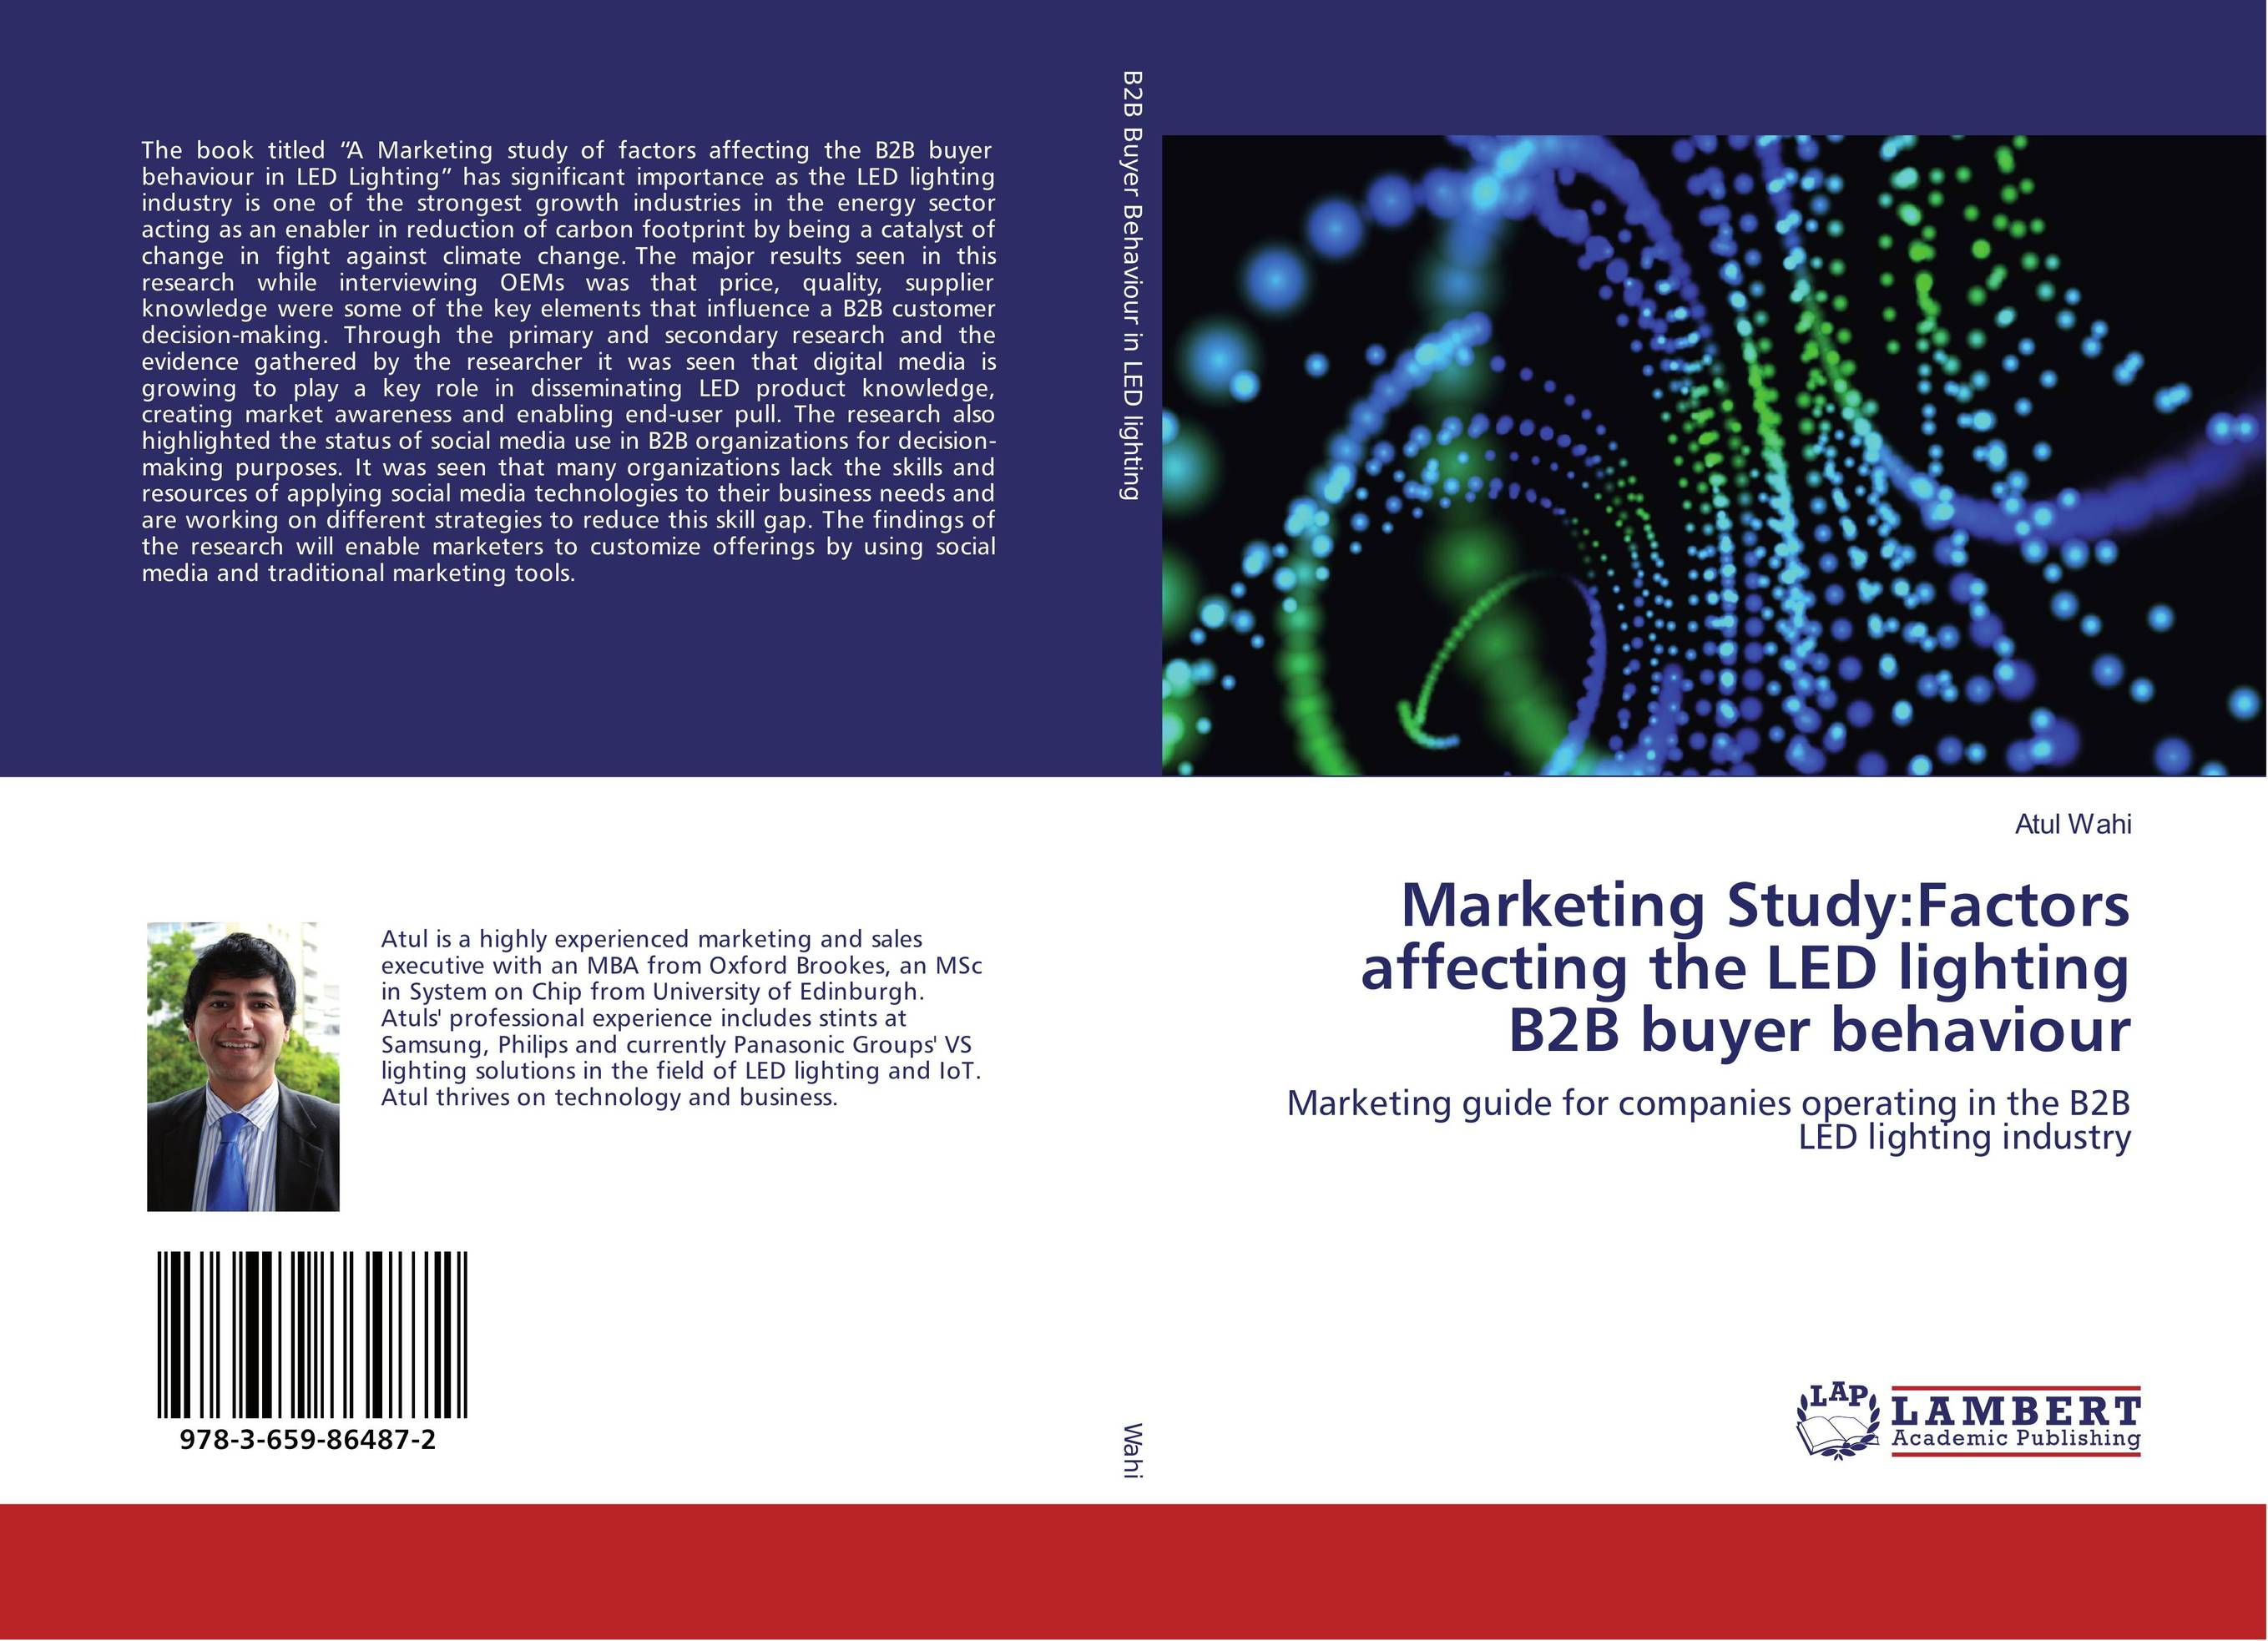 Marketing Study:Factors affecting the LED lighting B2B buyer behaviour